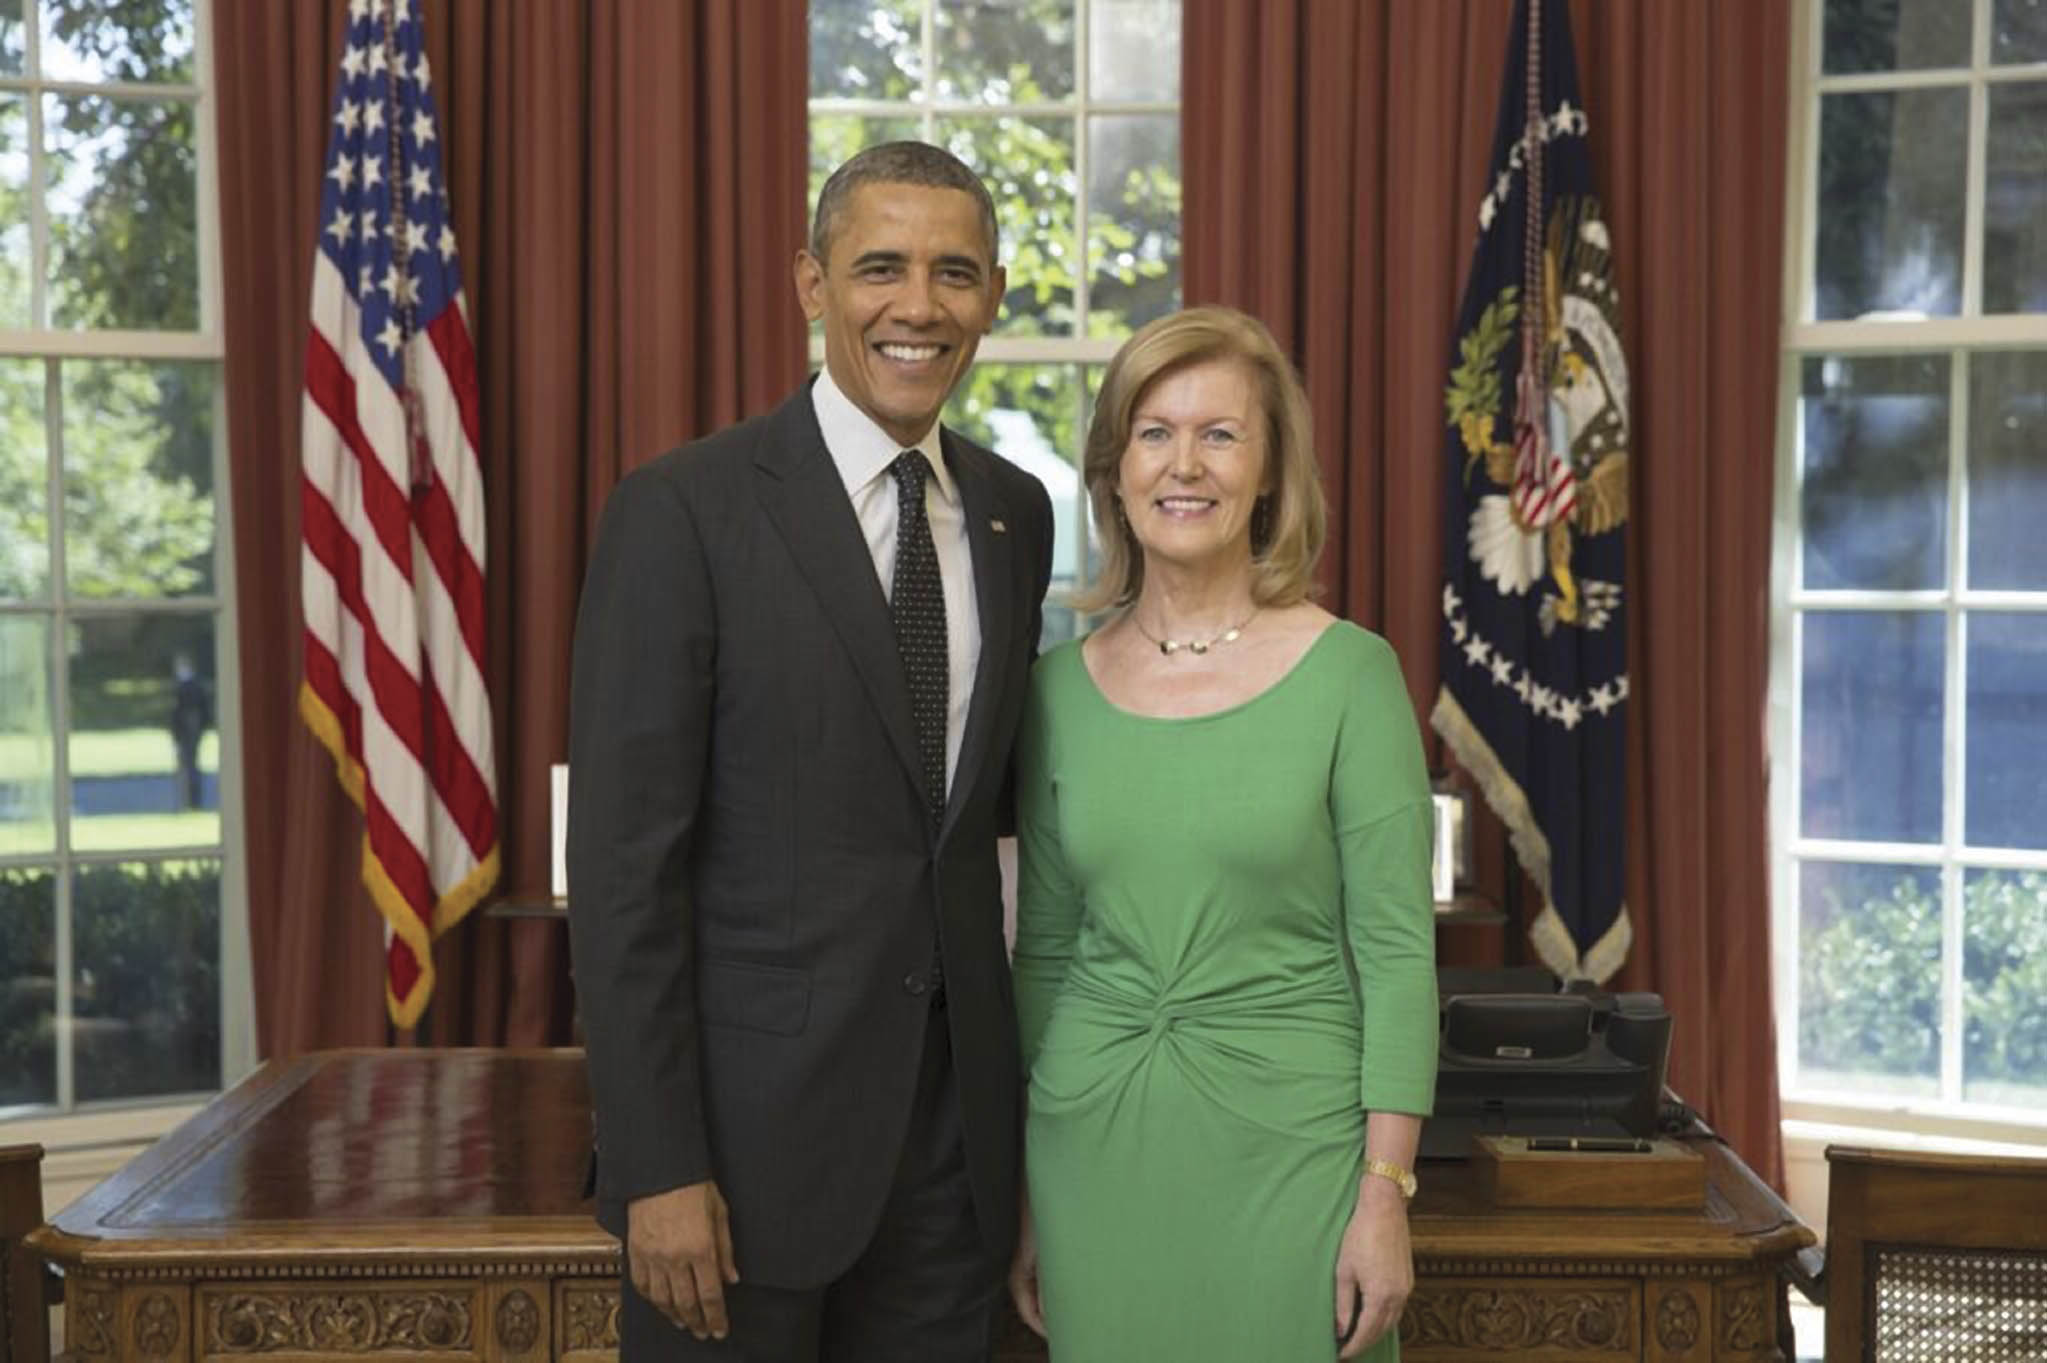 Anne Anderson presented her credentials to President Barack Obama on assuming the position of Ireland's  Ambassador to the U.S. (Photo: White House / Lawrence Jackson)